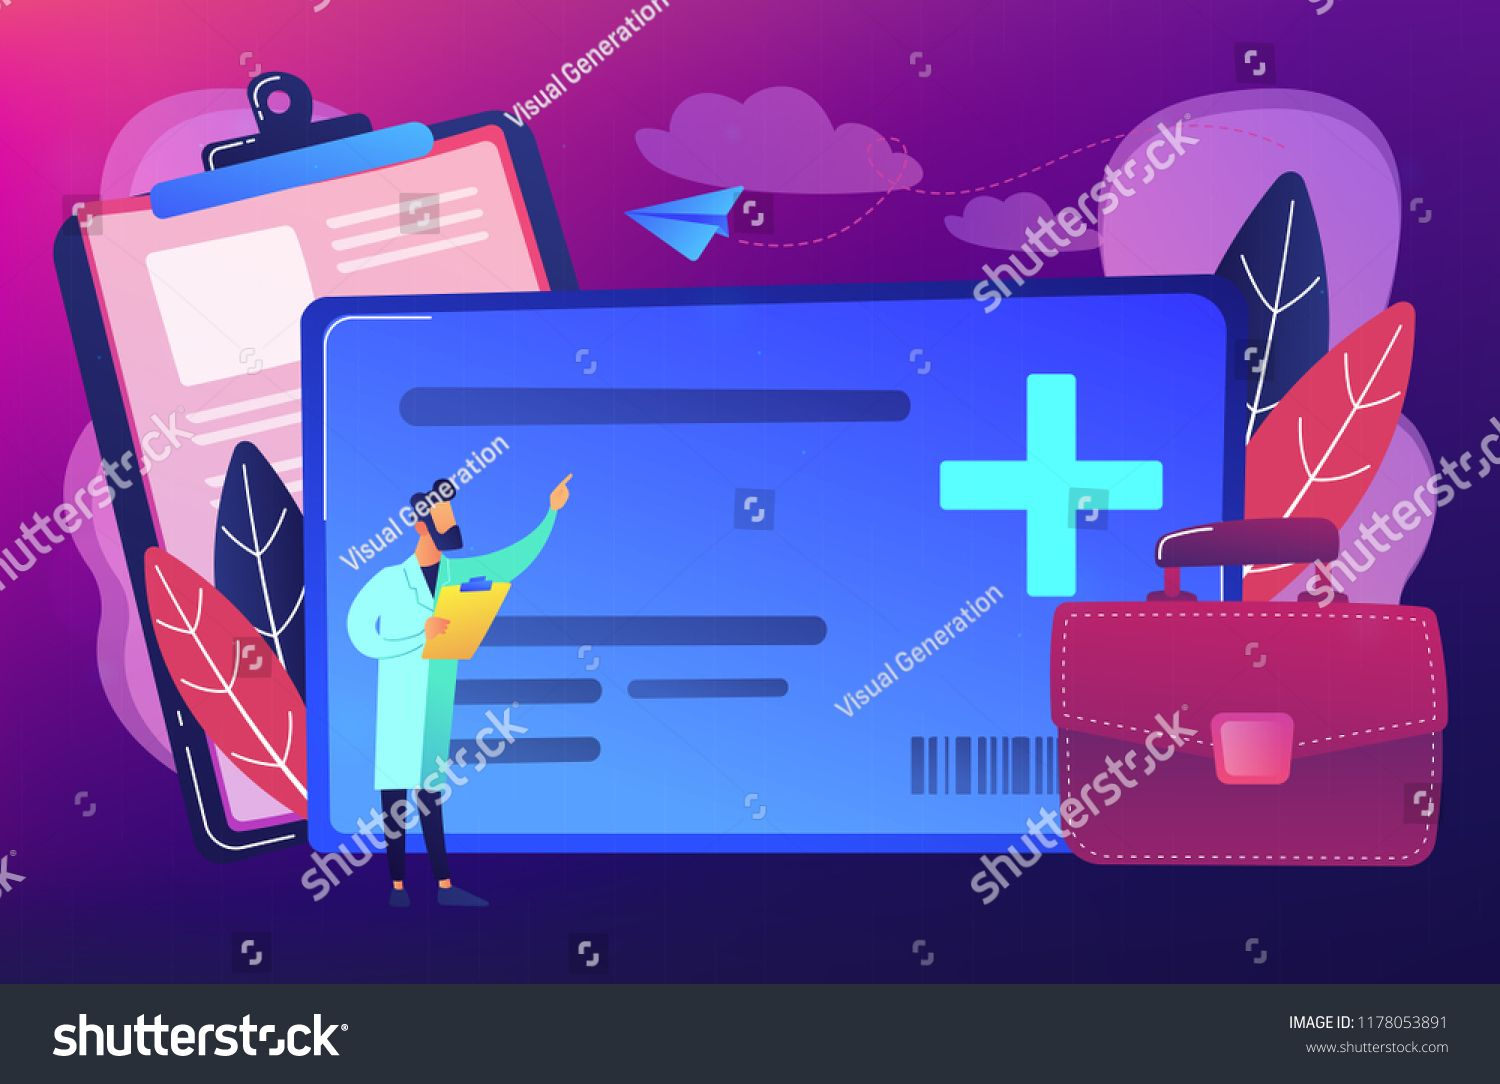 Healthcare smart card and doctor. Digital health and